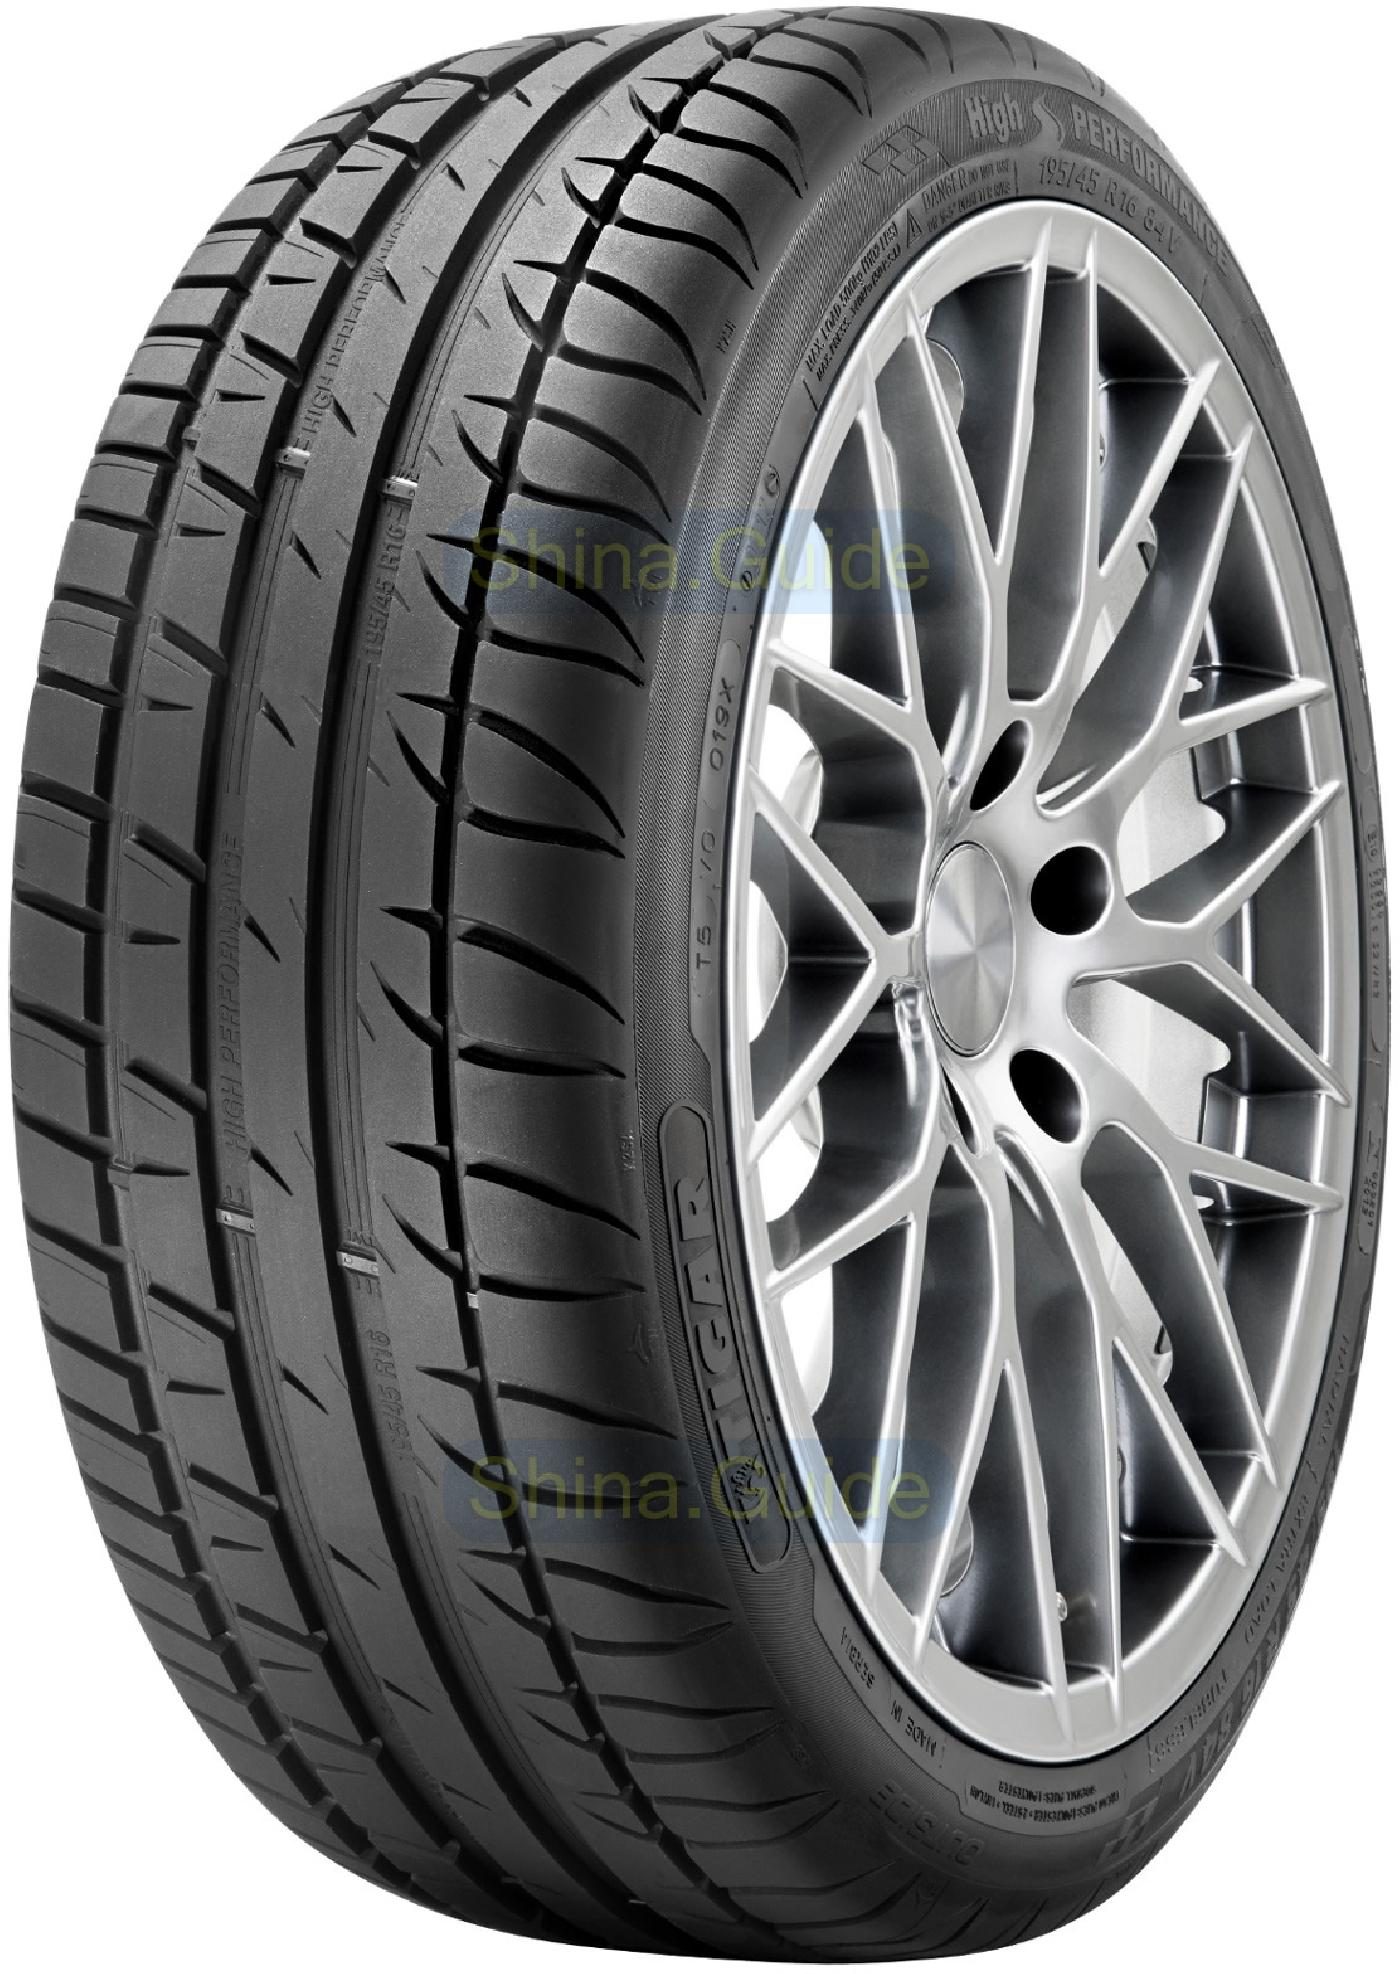 TIGAR HIGH PERFORMANCE 205/60 R15 91H